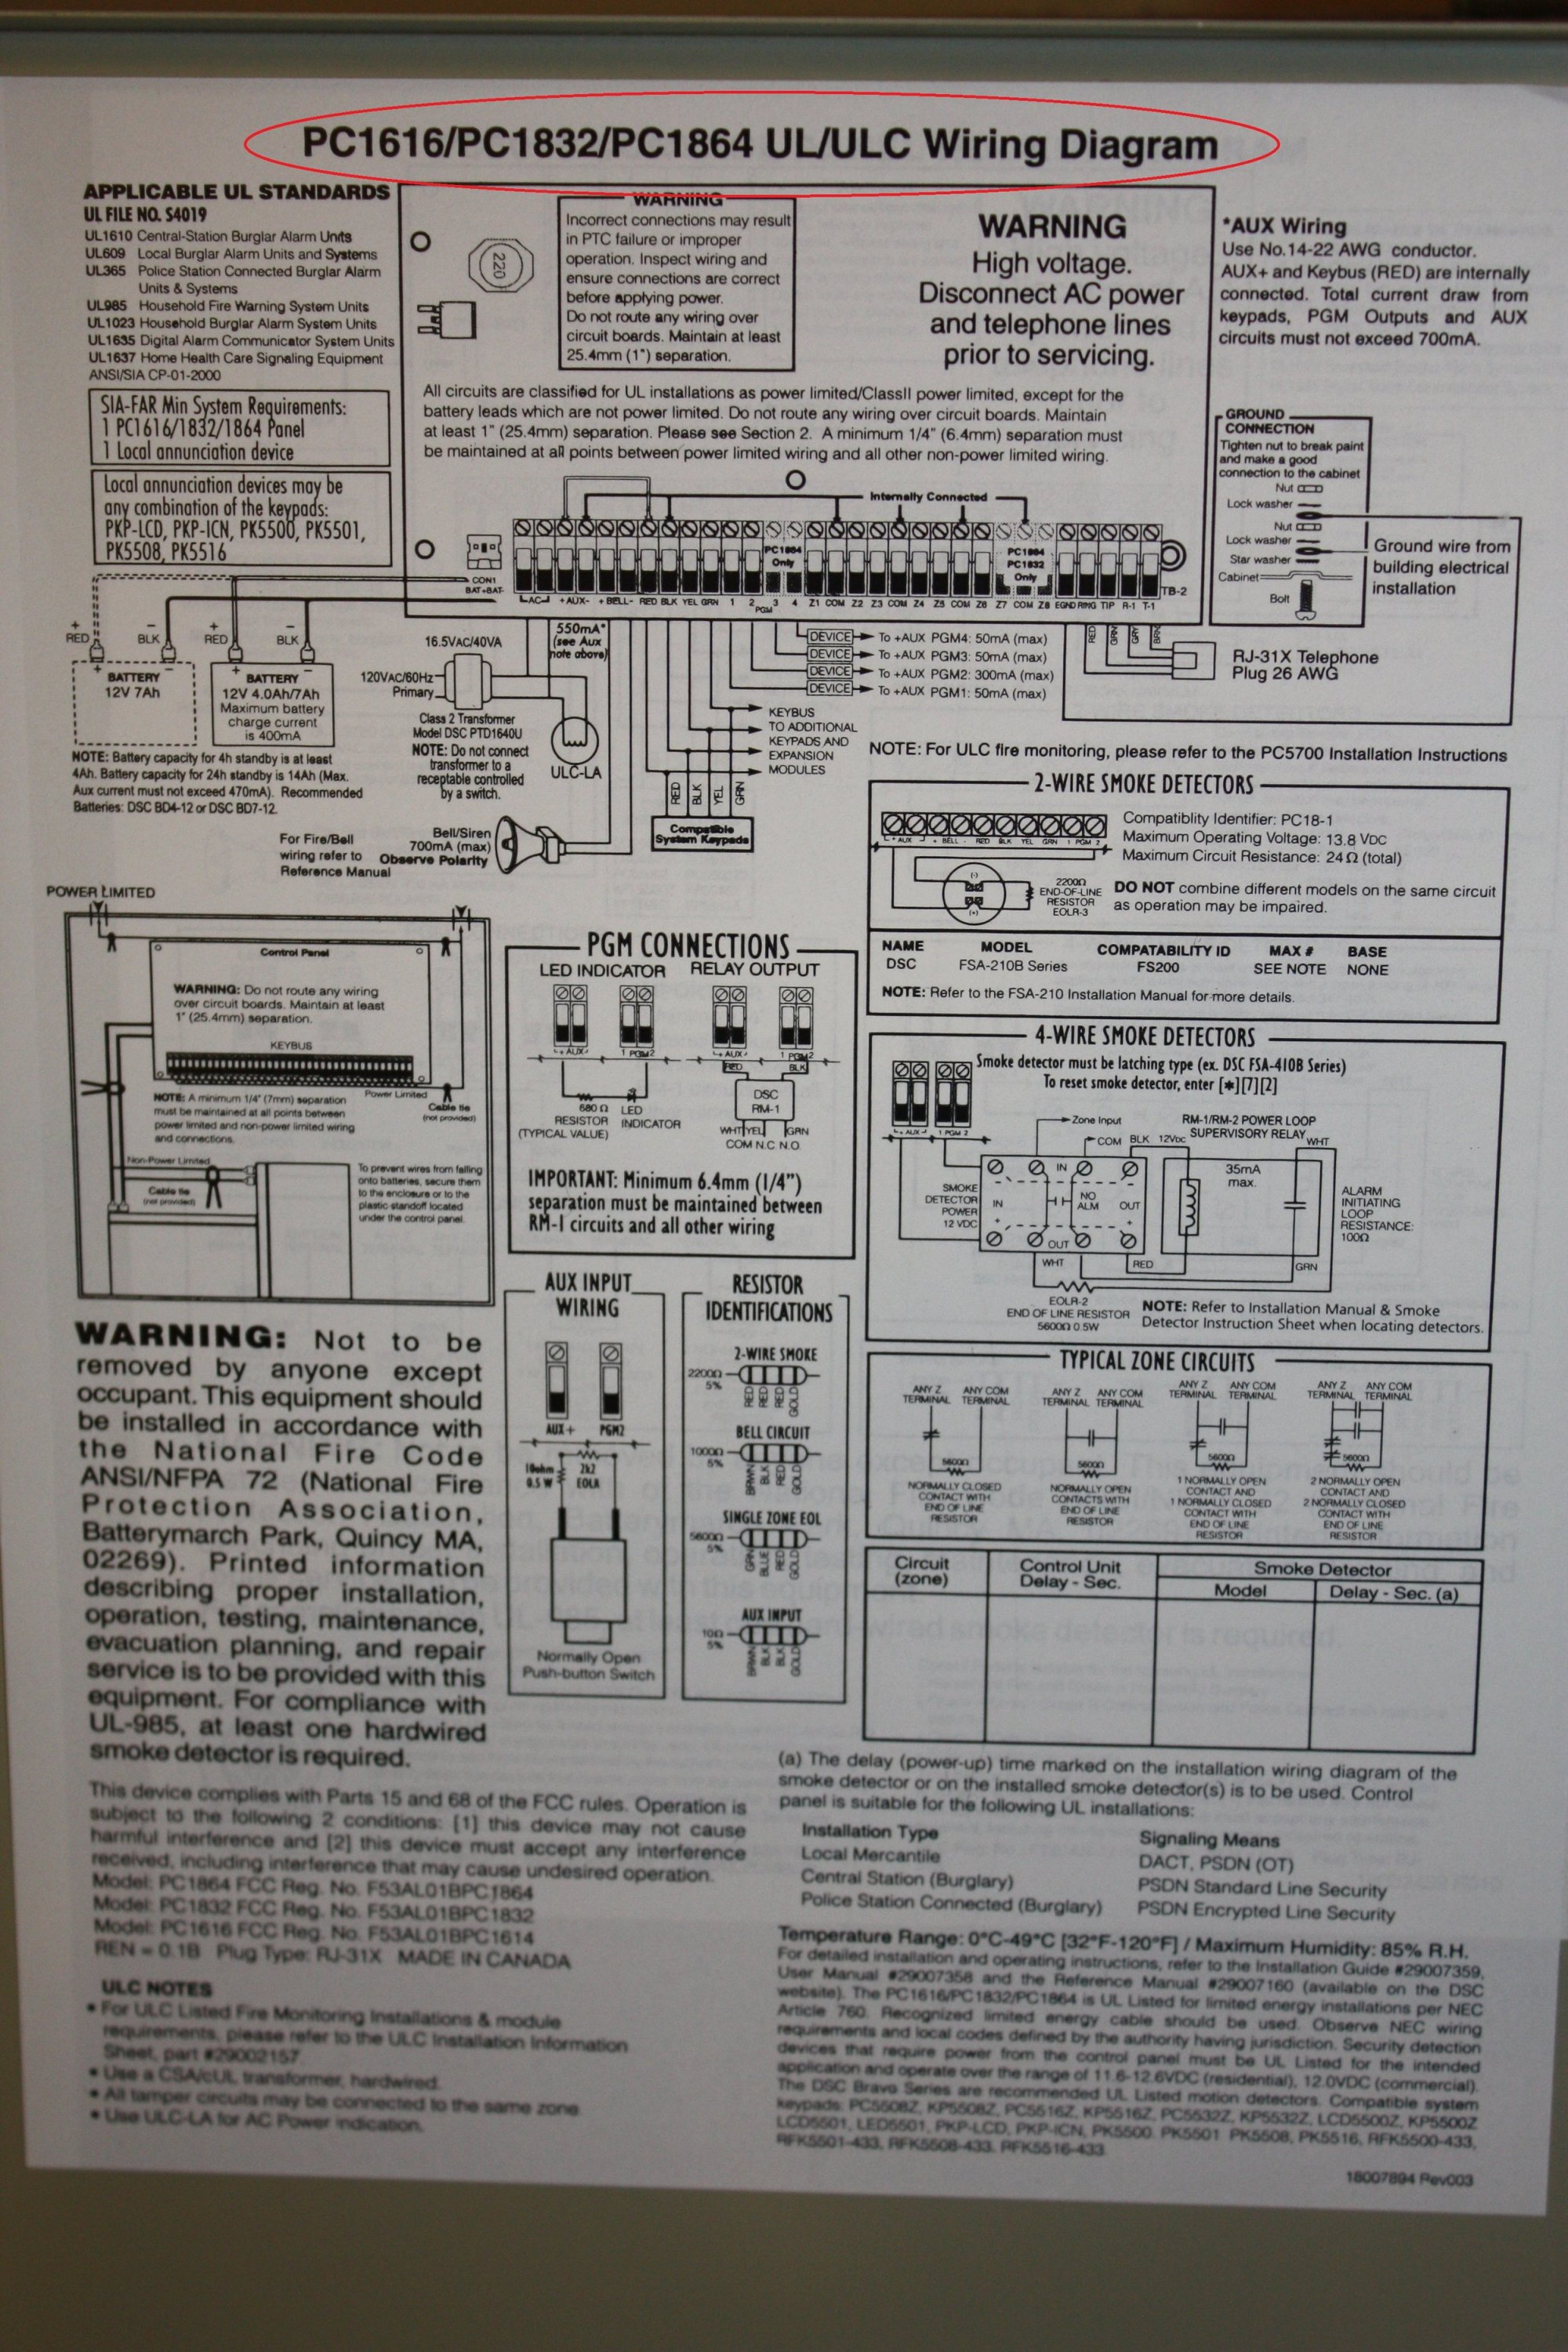 hight resolution of 5501 dsc fixed english nca alarms nashville wiring diagram nca schematic for the 5501 dsc fixed